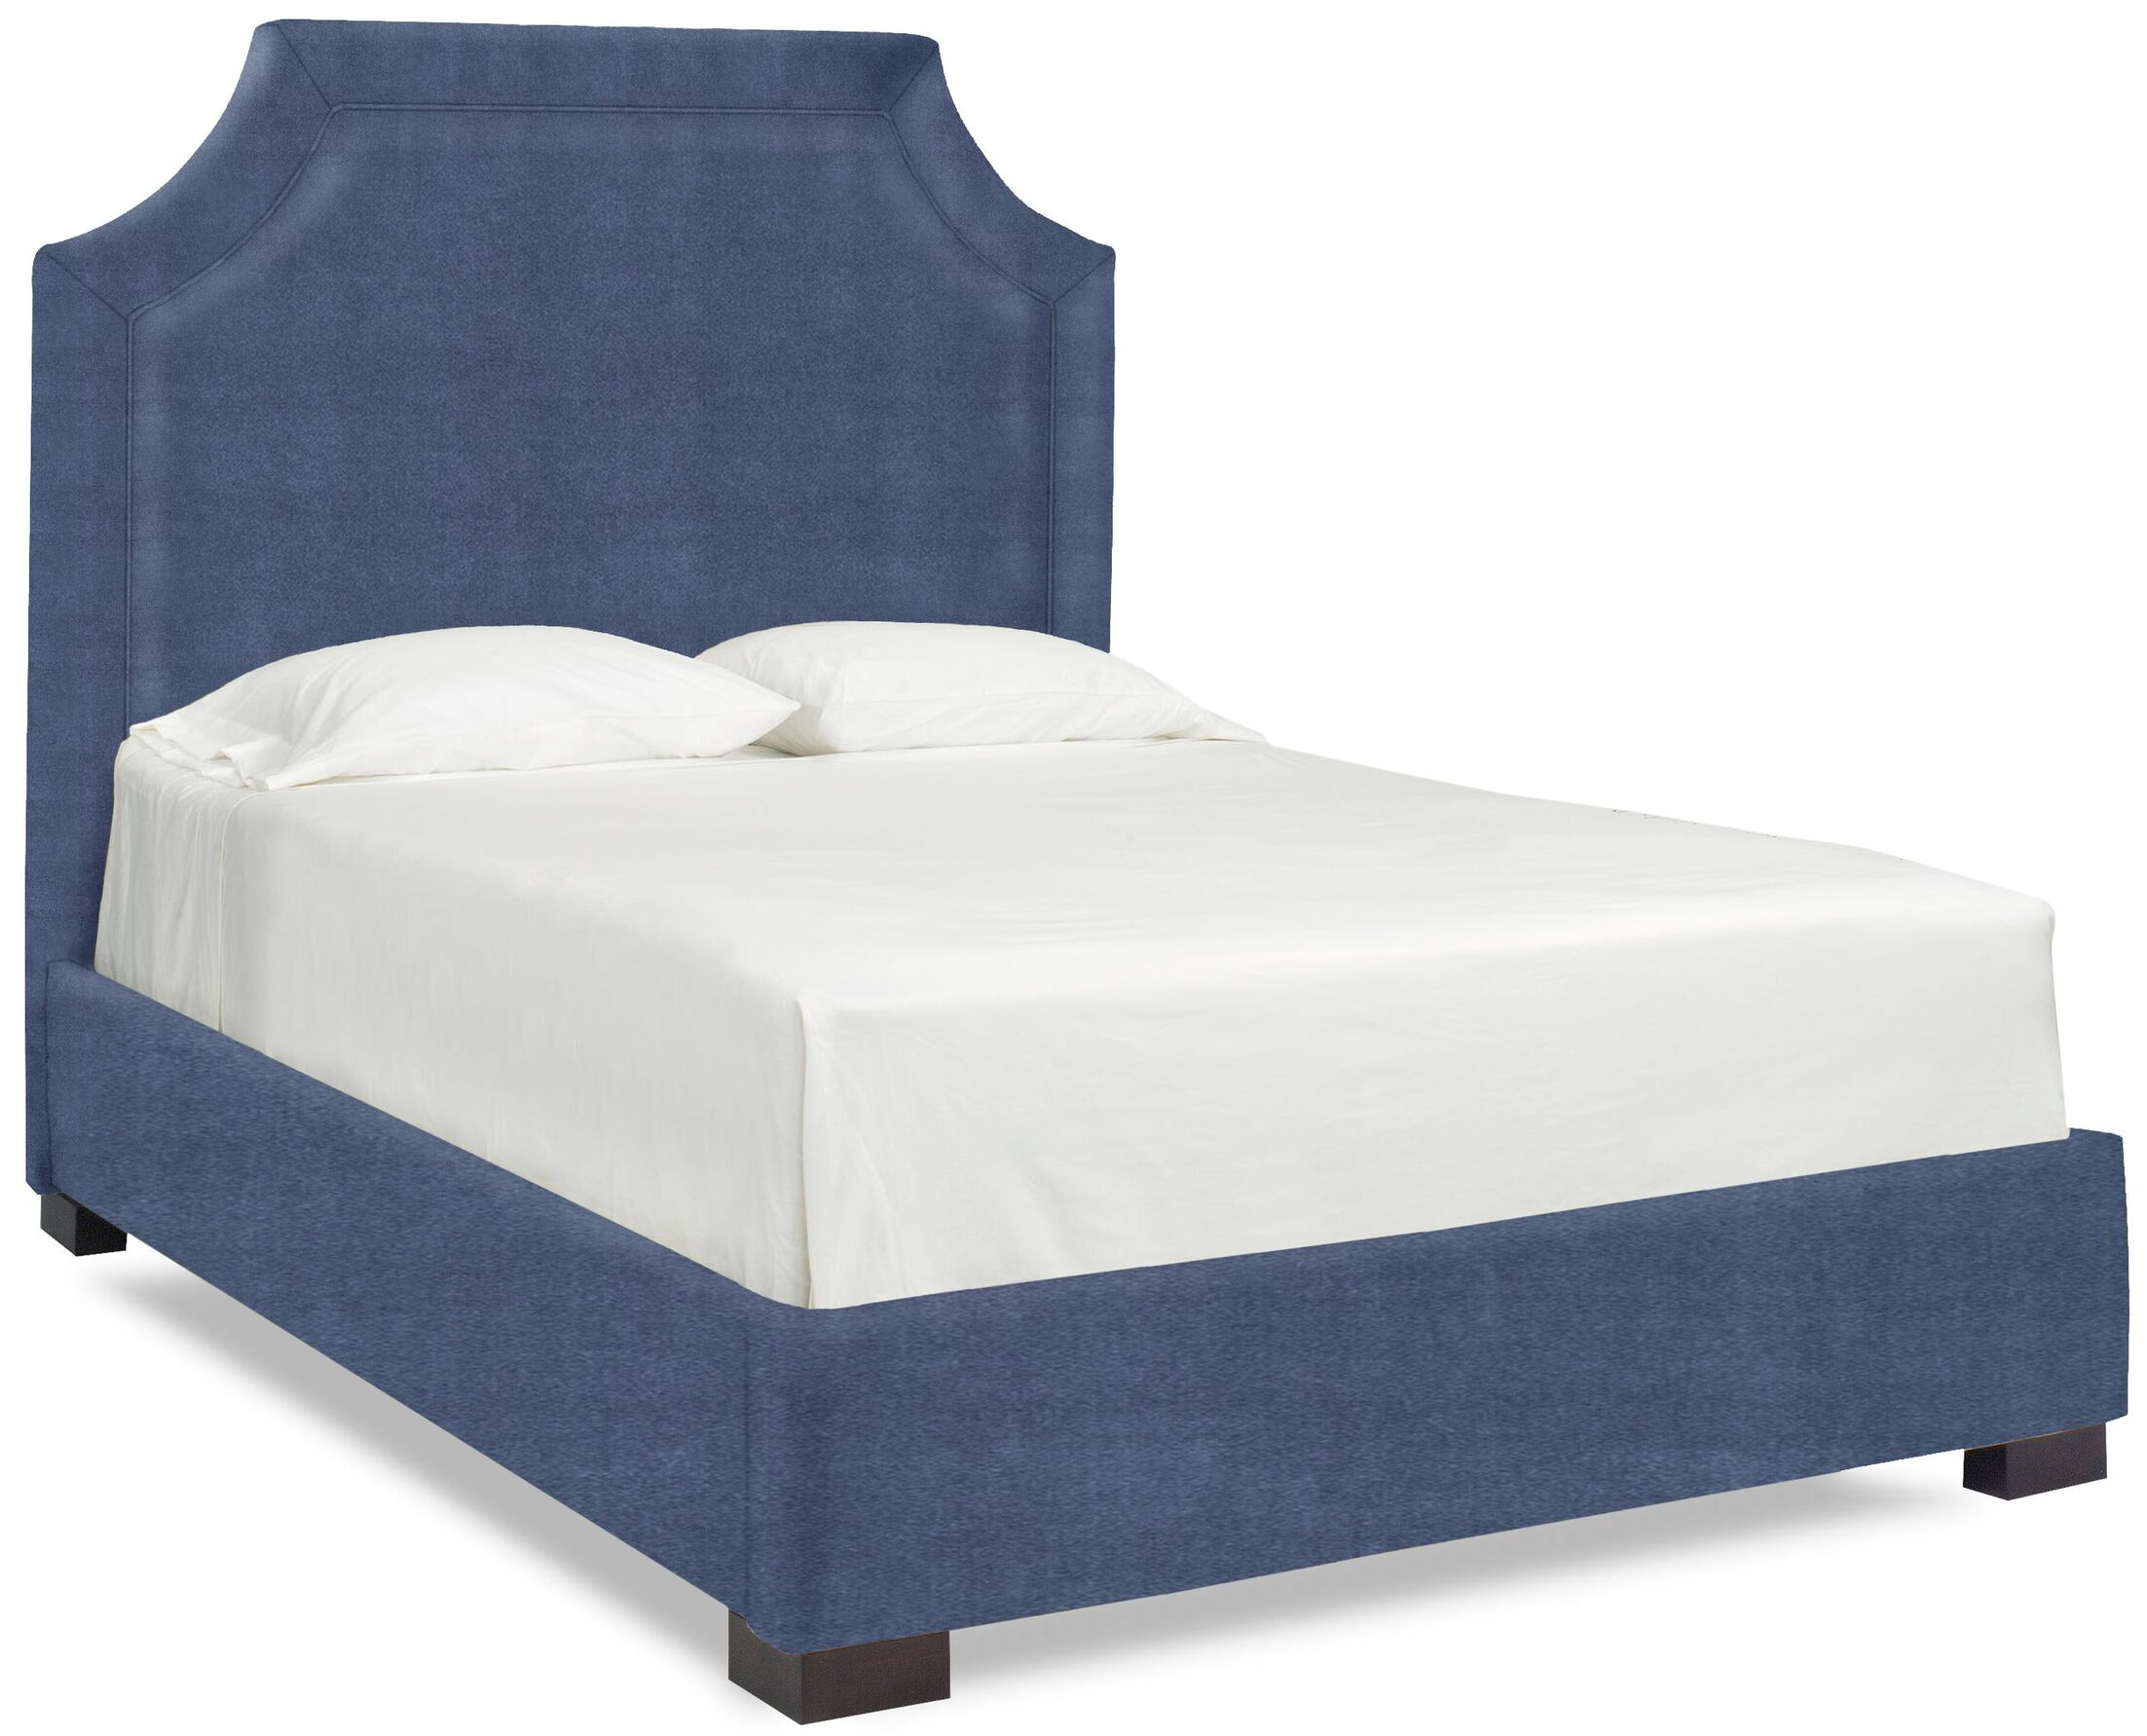 Dreamtime Upholstered Panel Bed Color: Navy, Size: Queen